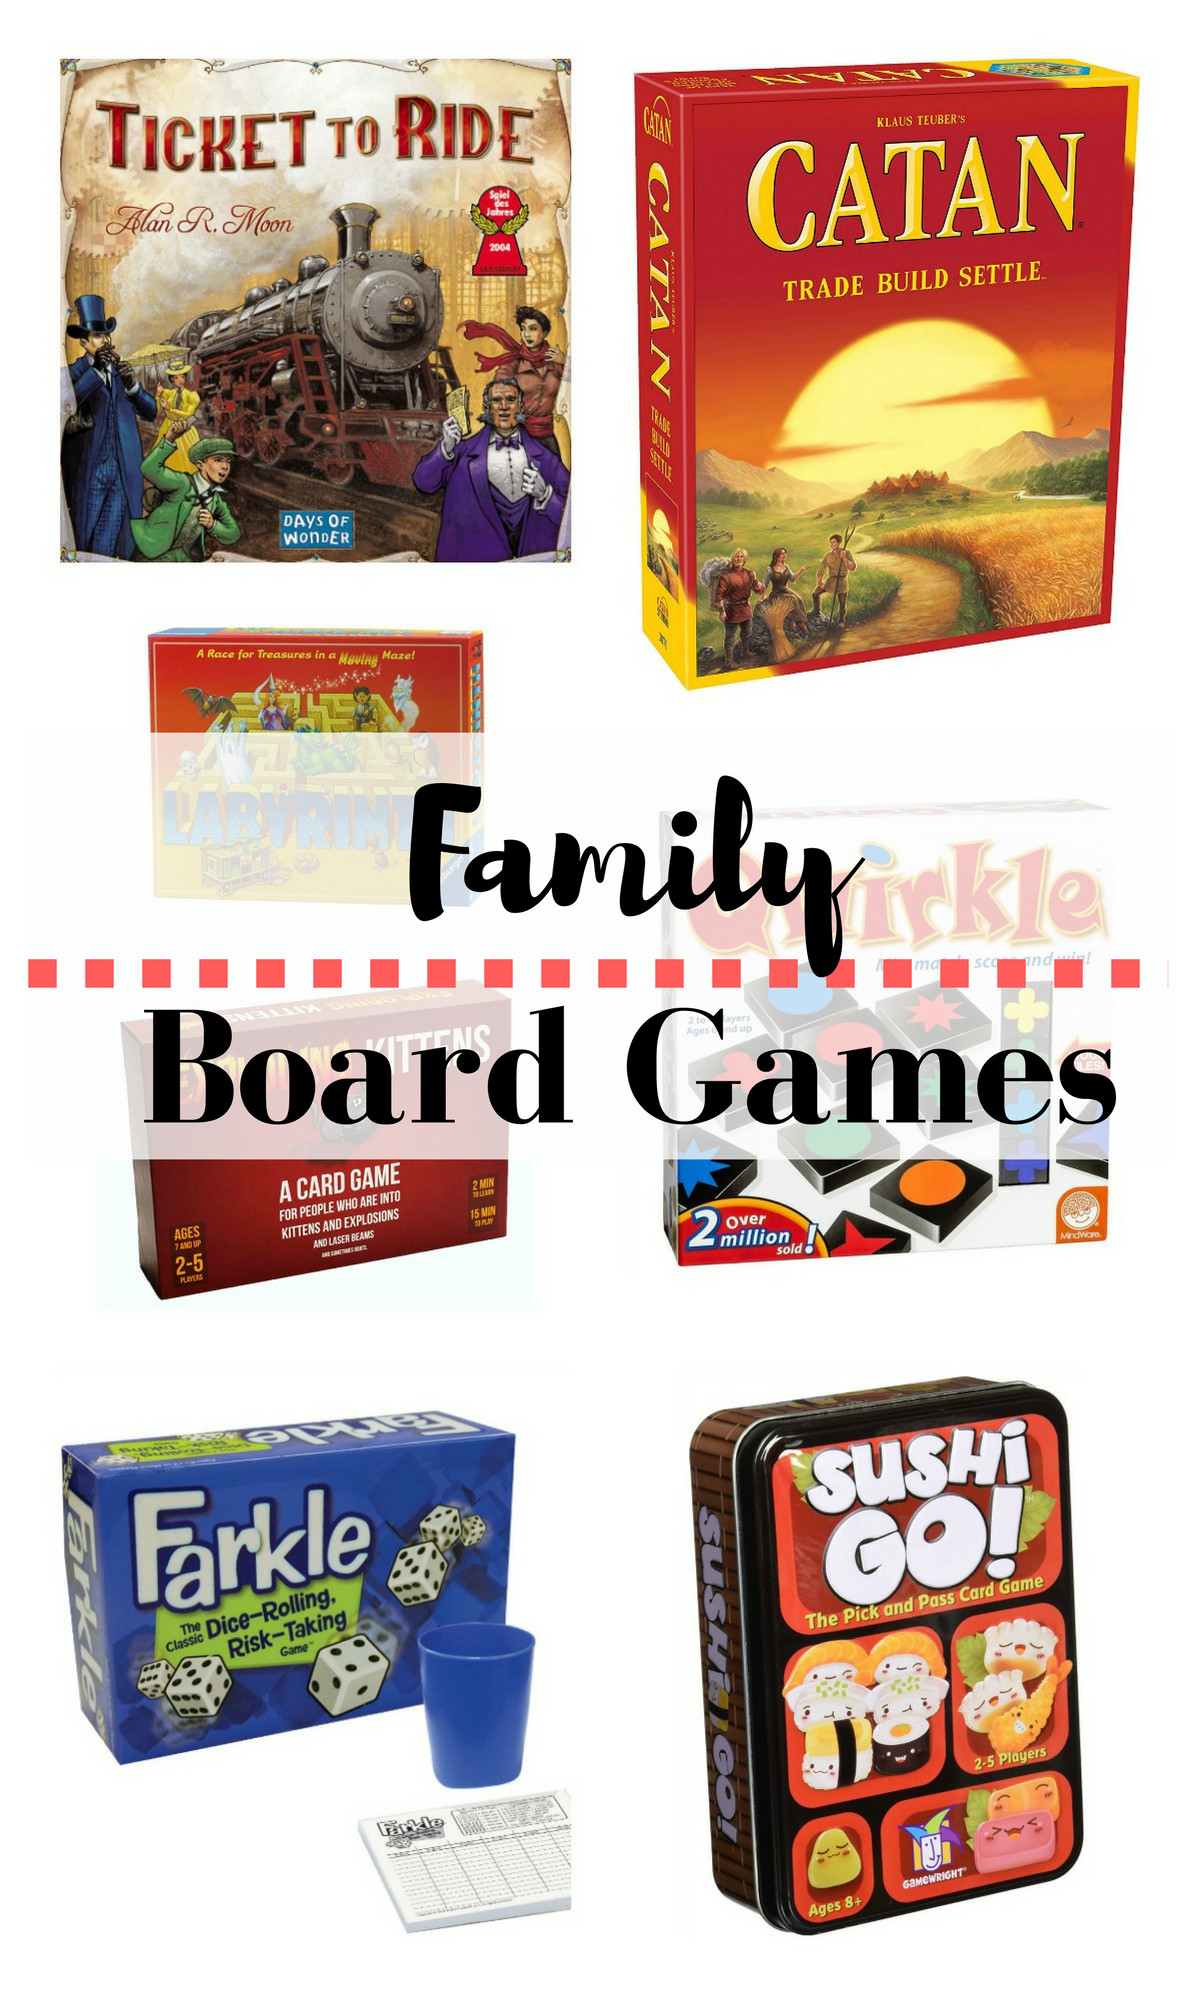 Popular Family Board Games Luxury Best Family Board Games Long Story Short Of Gorgeous 42 Pictures Popular Family Board Games